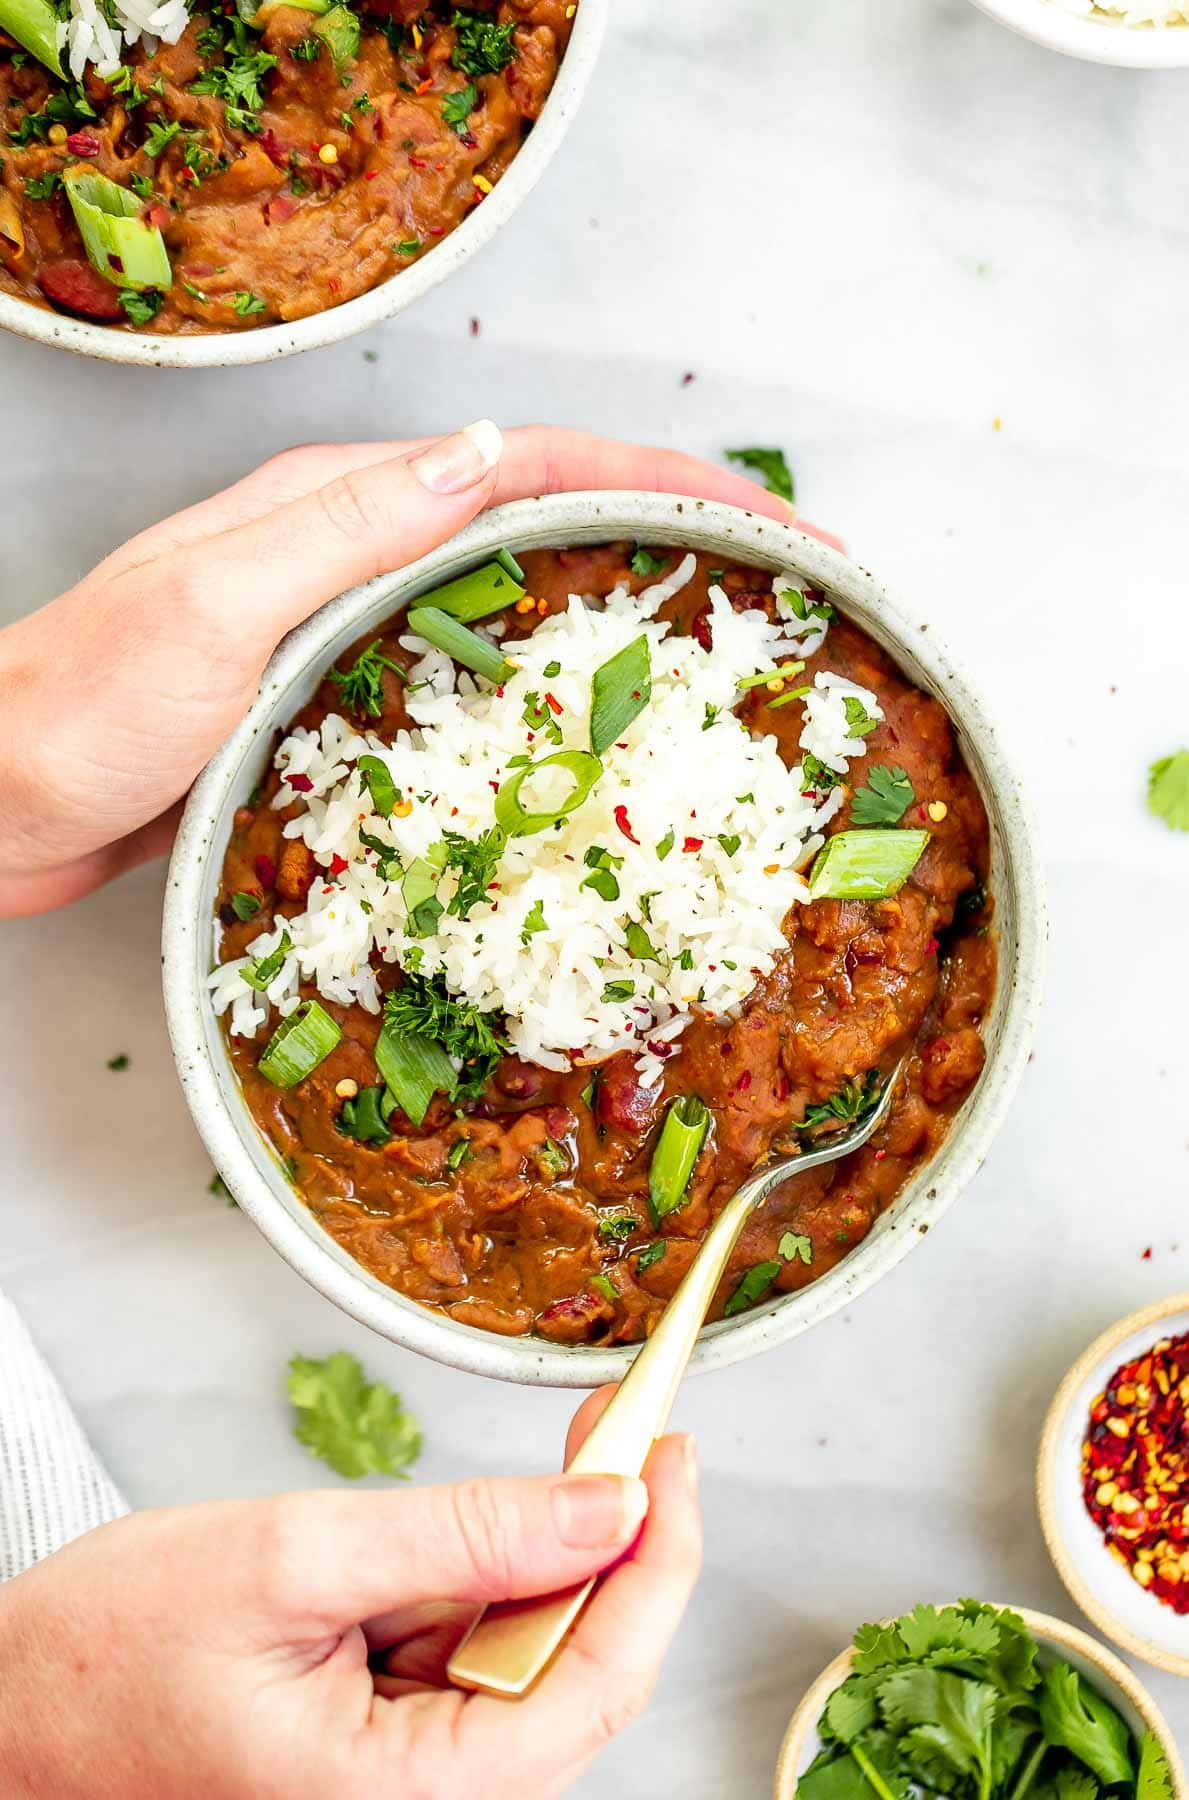 Hands holding onto a bowl of the red beans and rice with a spoon on the side.